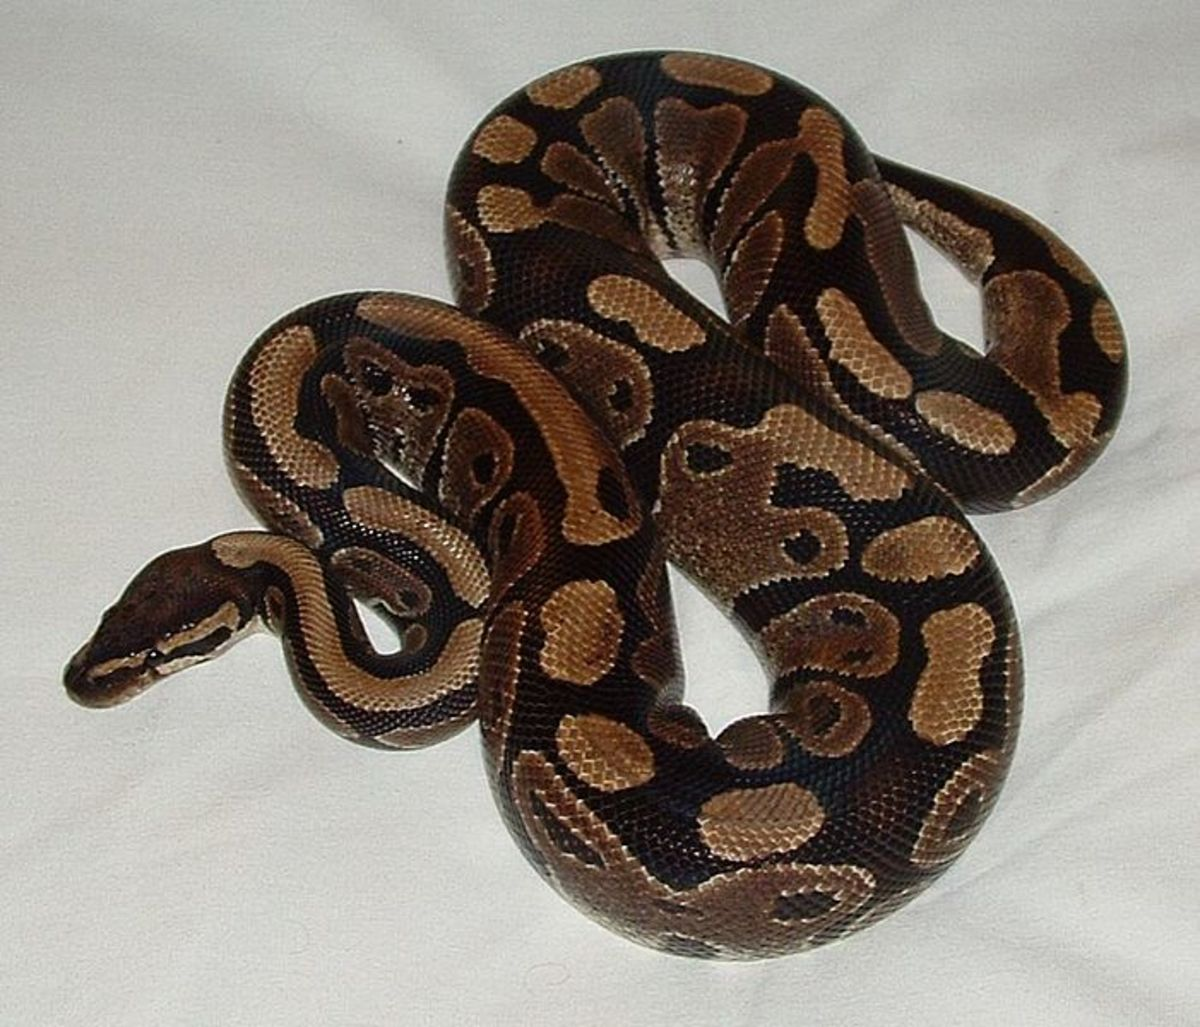 In this photo is a very nice Ball Python specimen named Lucy.